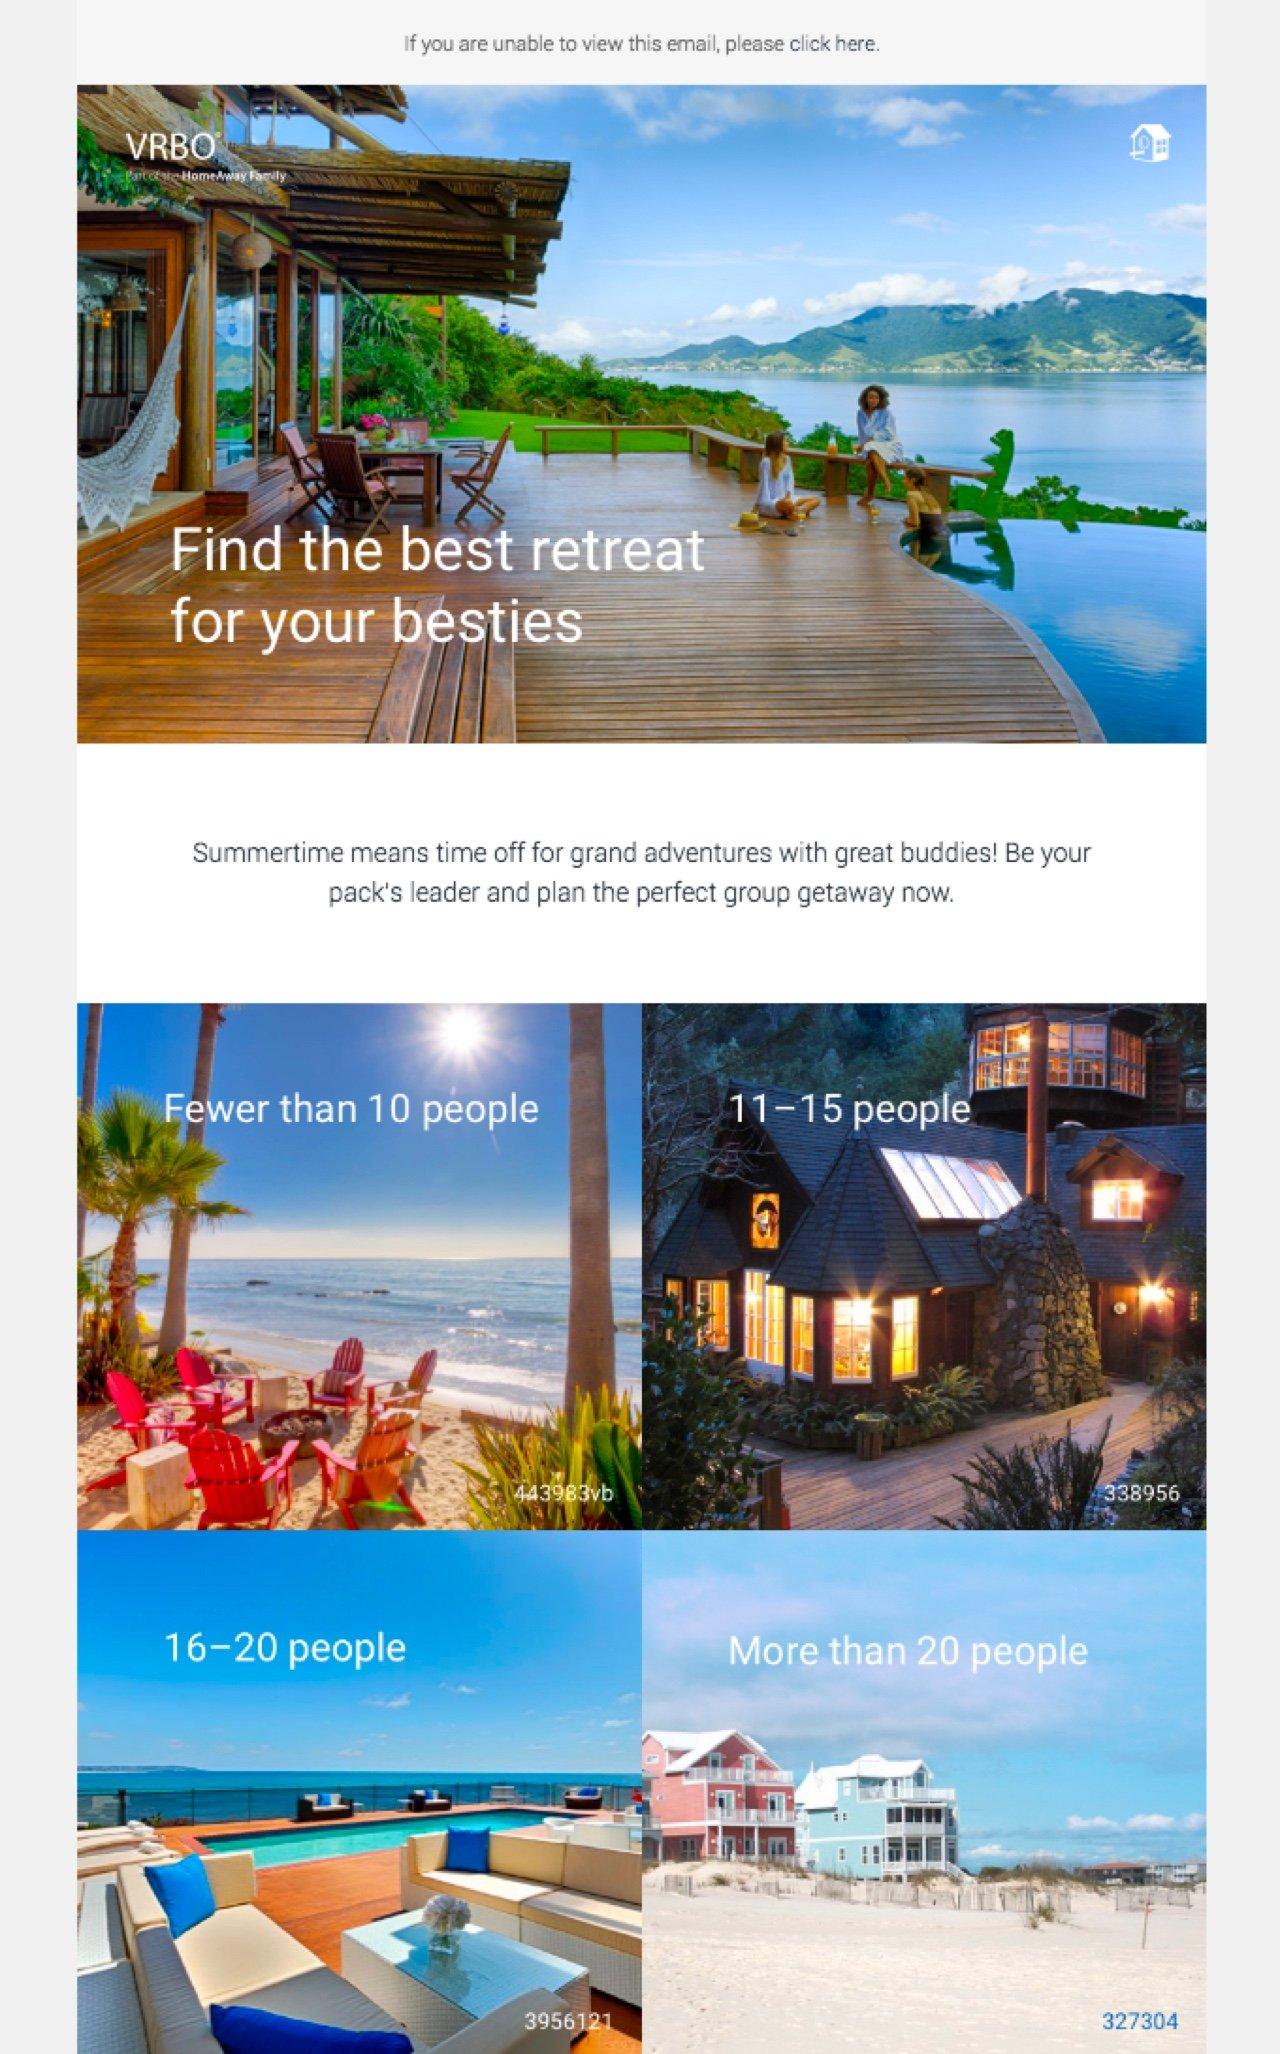 VRBO hotel newsletter example